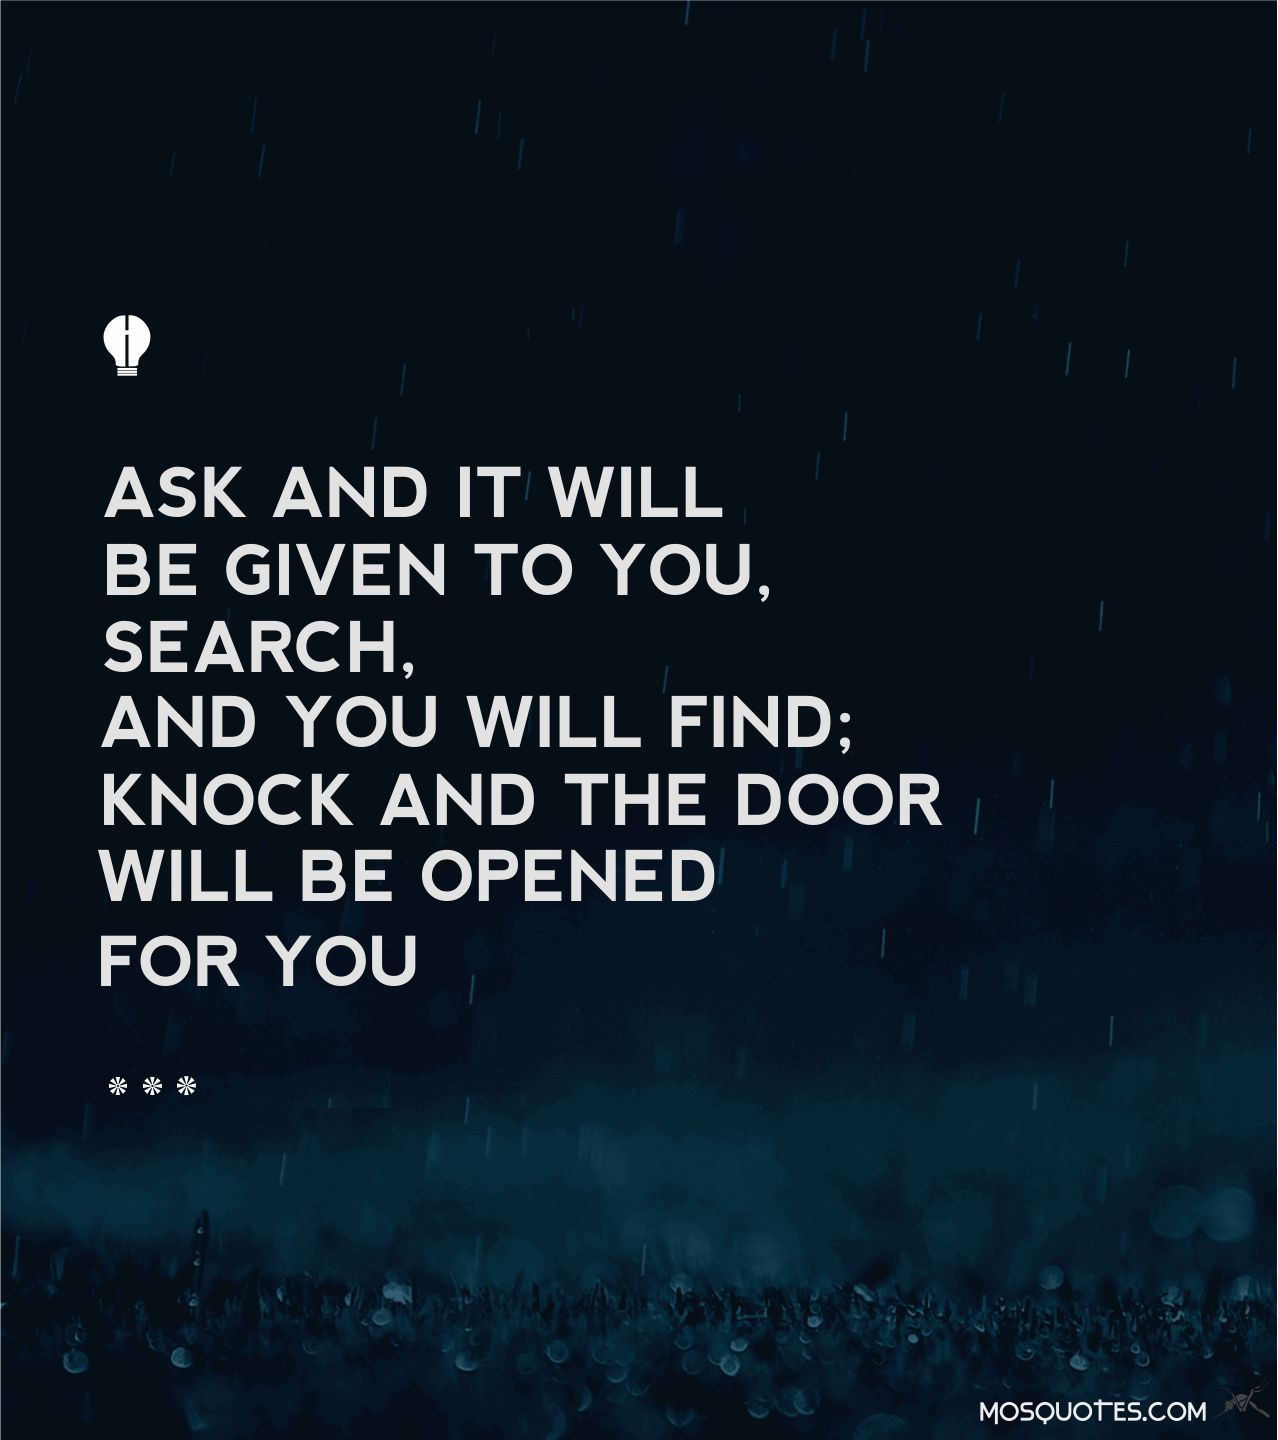 Life Inspiring Quotes Life Inspirational Quotes Ask And It Will Be Given To You Search